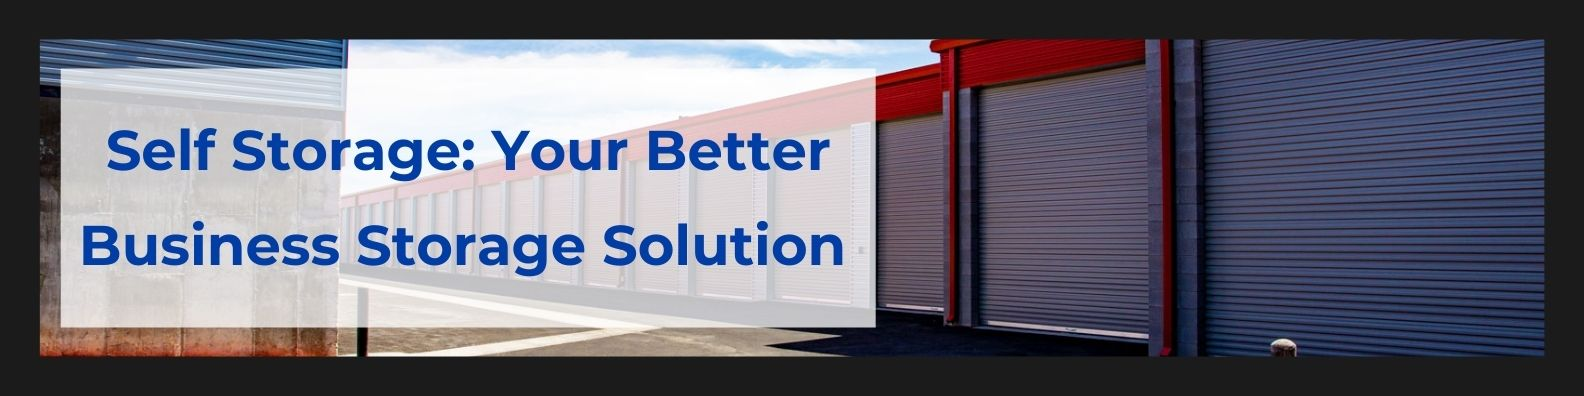 Self Storage Your Better Business Storage Solution